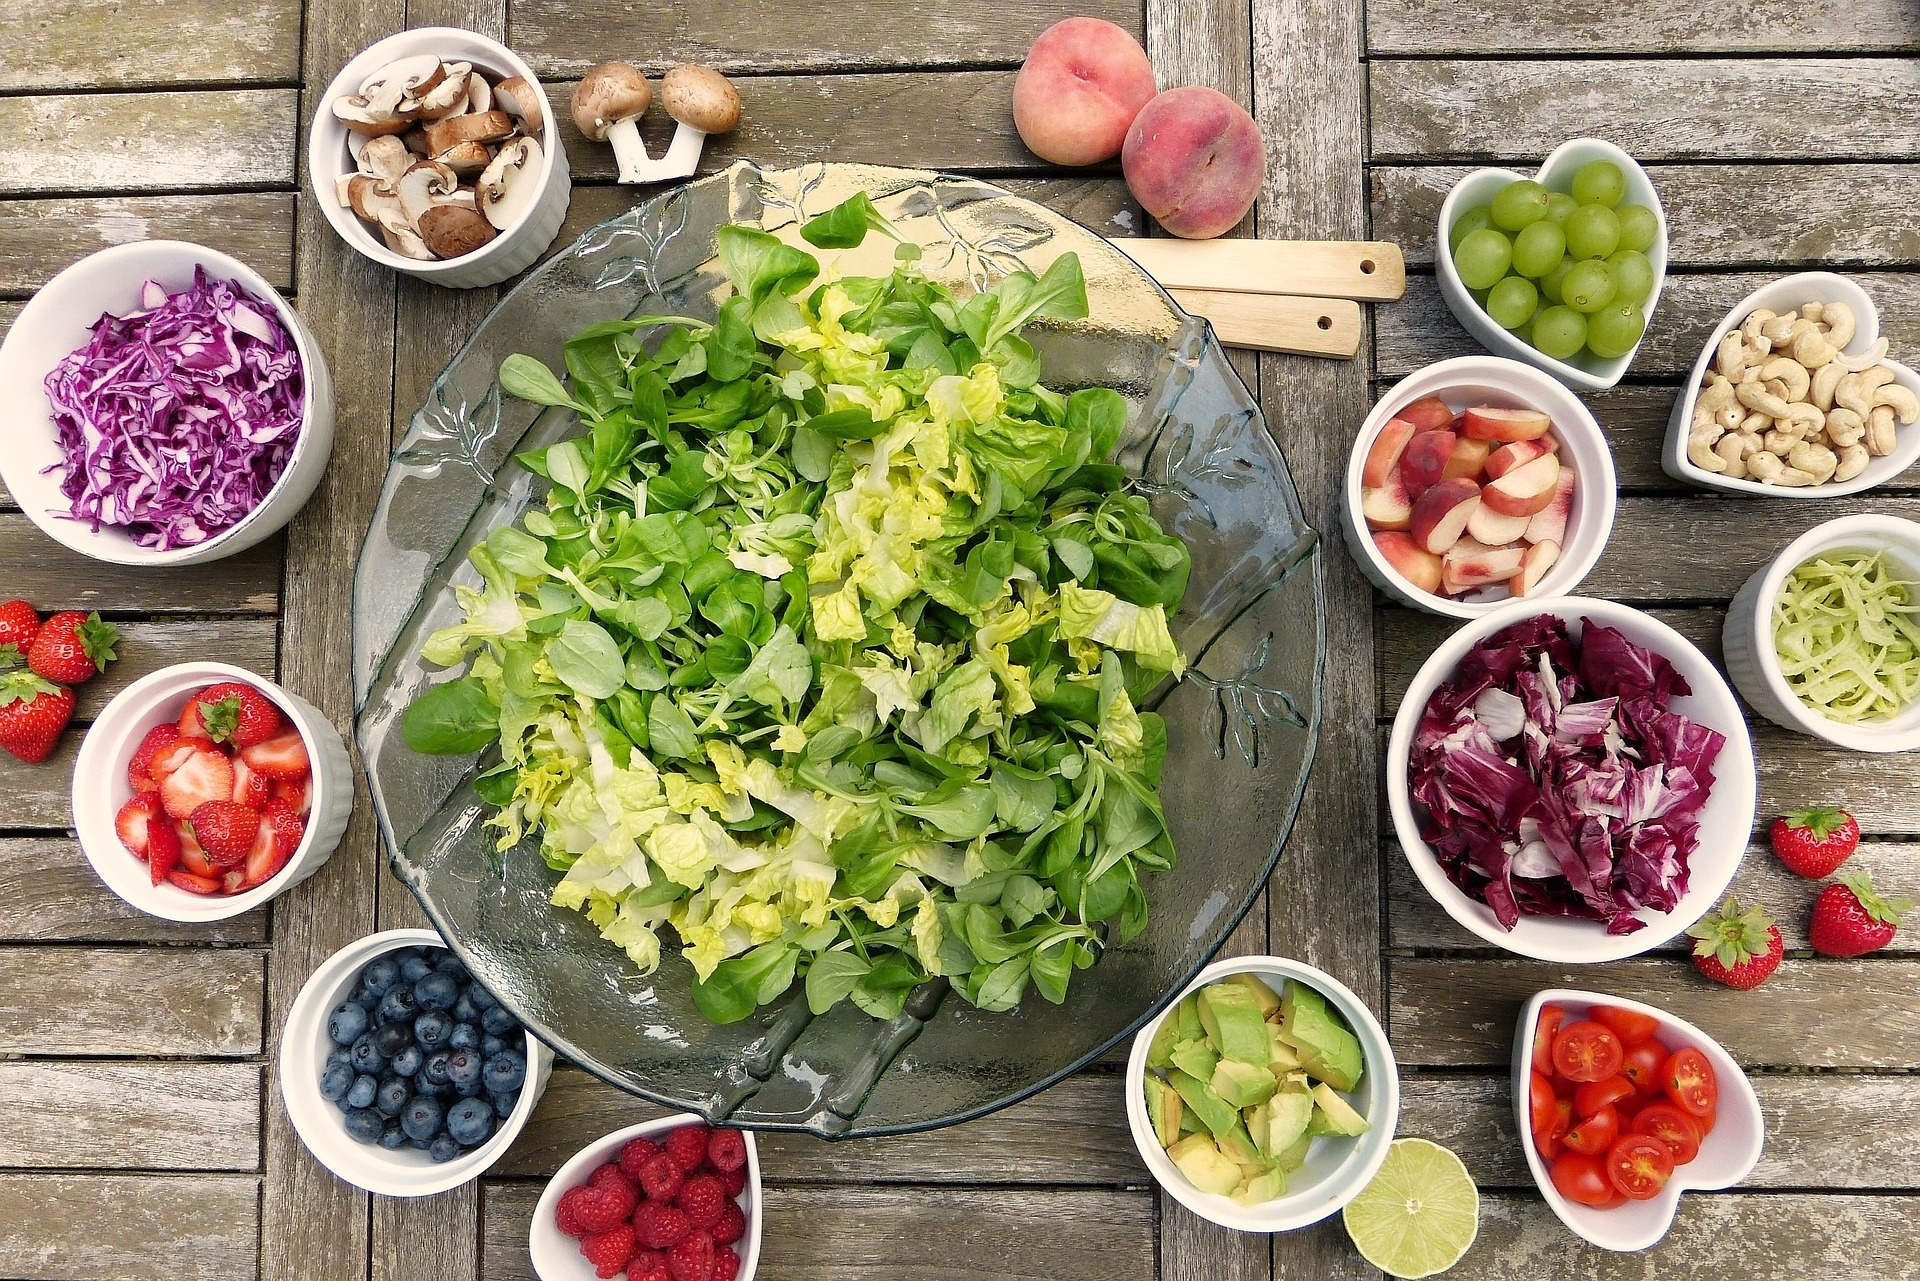 IMAGE OF SALAD